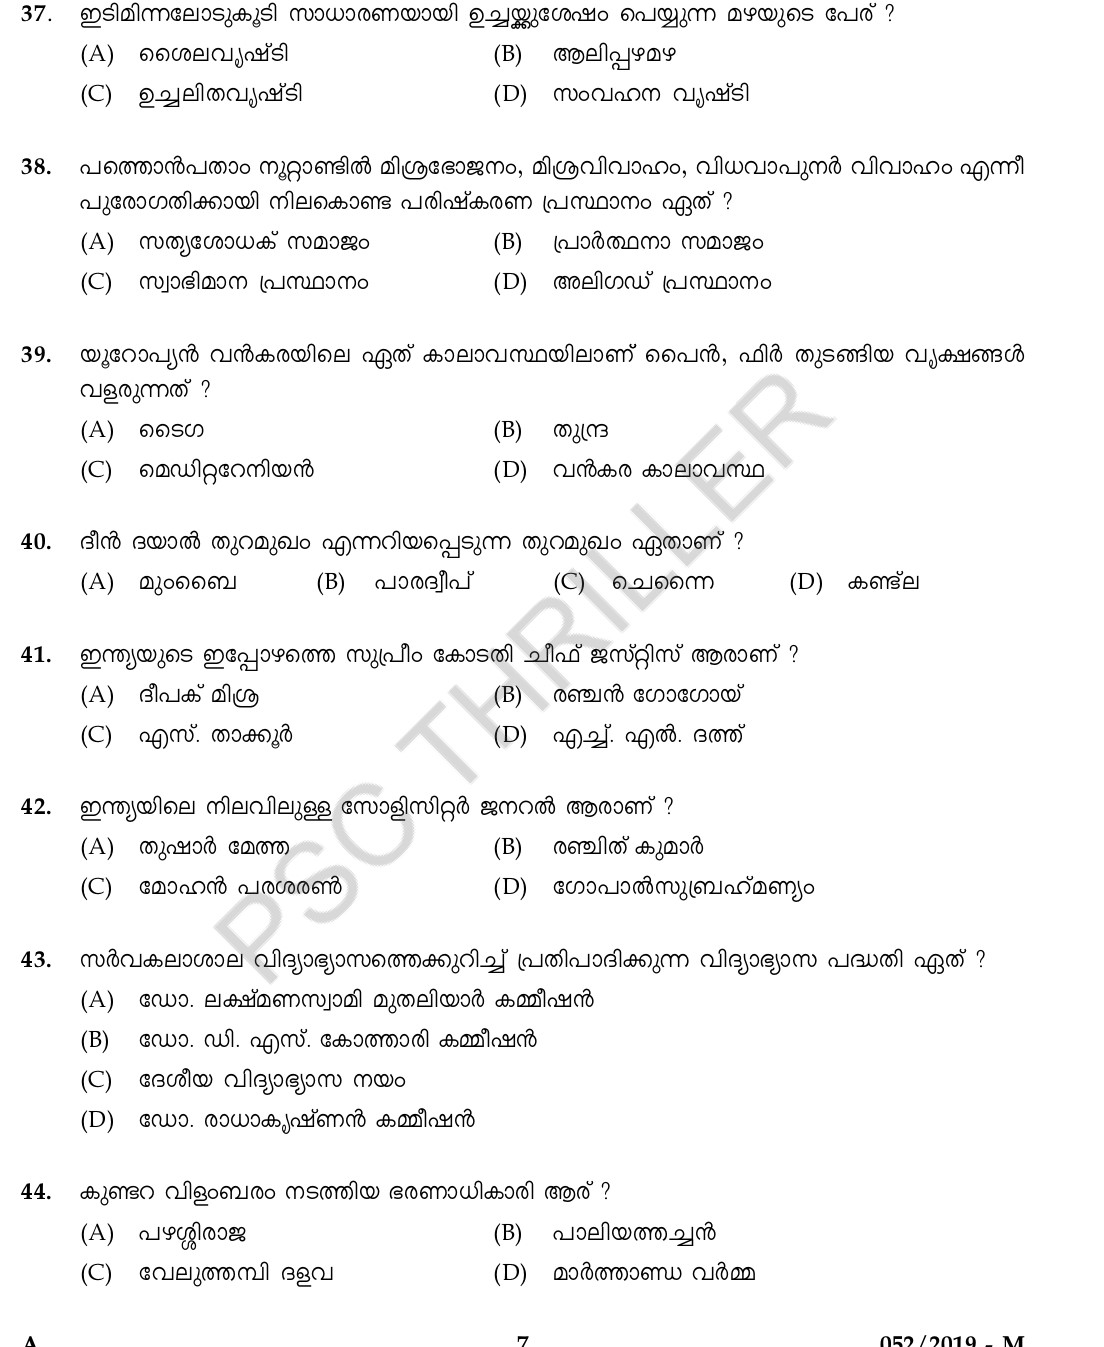 VEO 2019 (KLM, IDK, KNR )Question Paper with Answer Key 52/2019